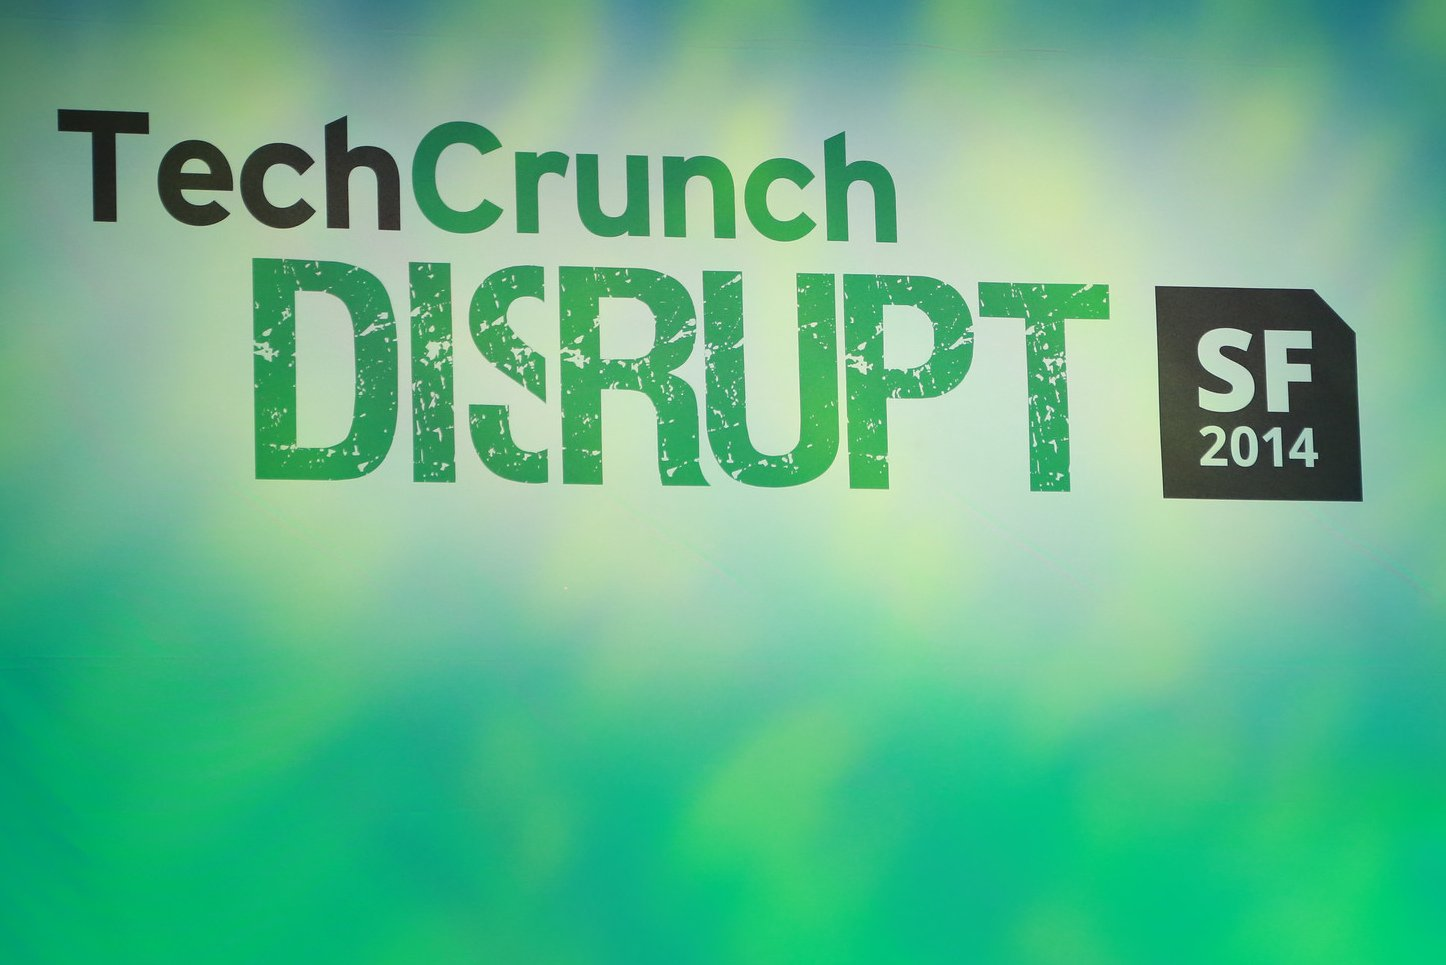 Disruption - Photo by TechCrunch - CC BY 2.0